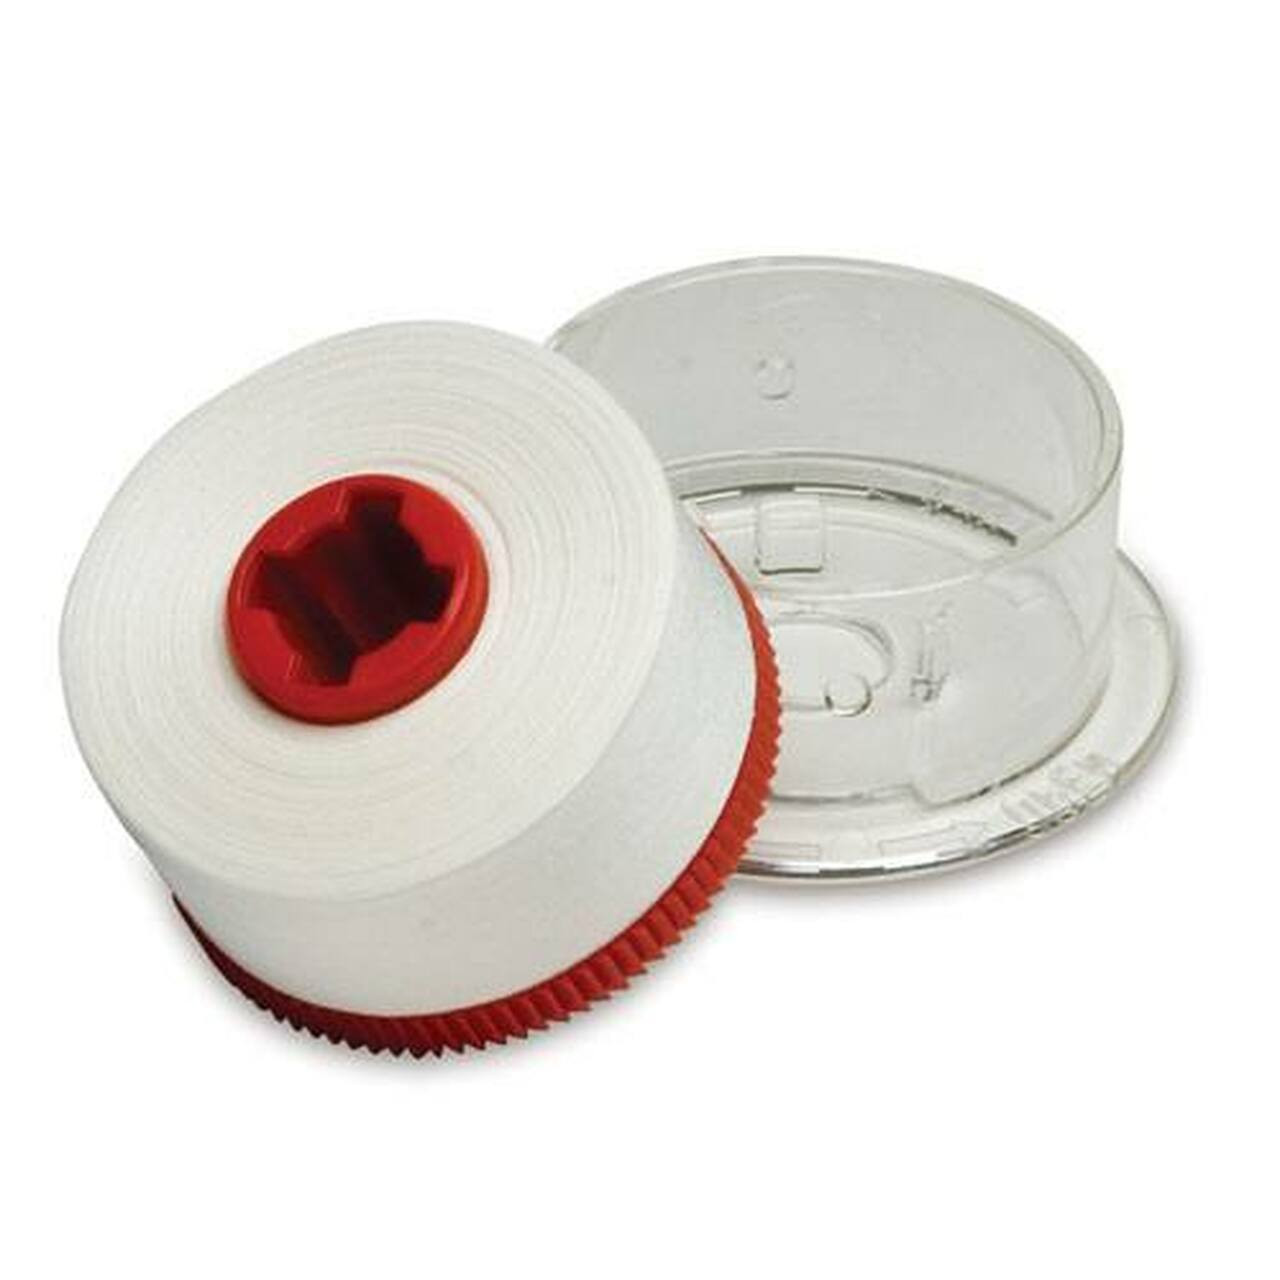 Cletop White Tape Replacement - 8500-10-0015MZ